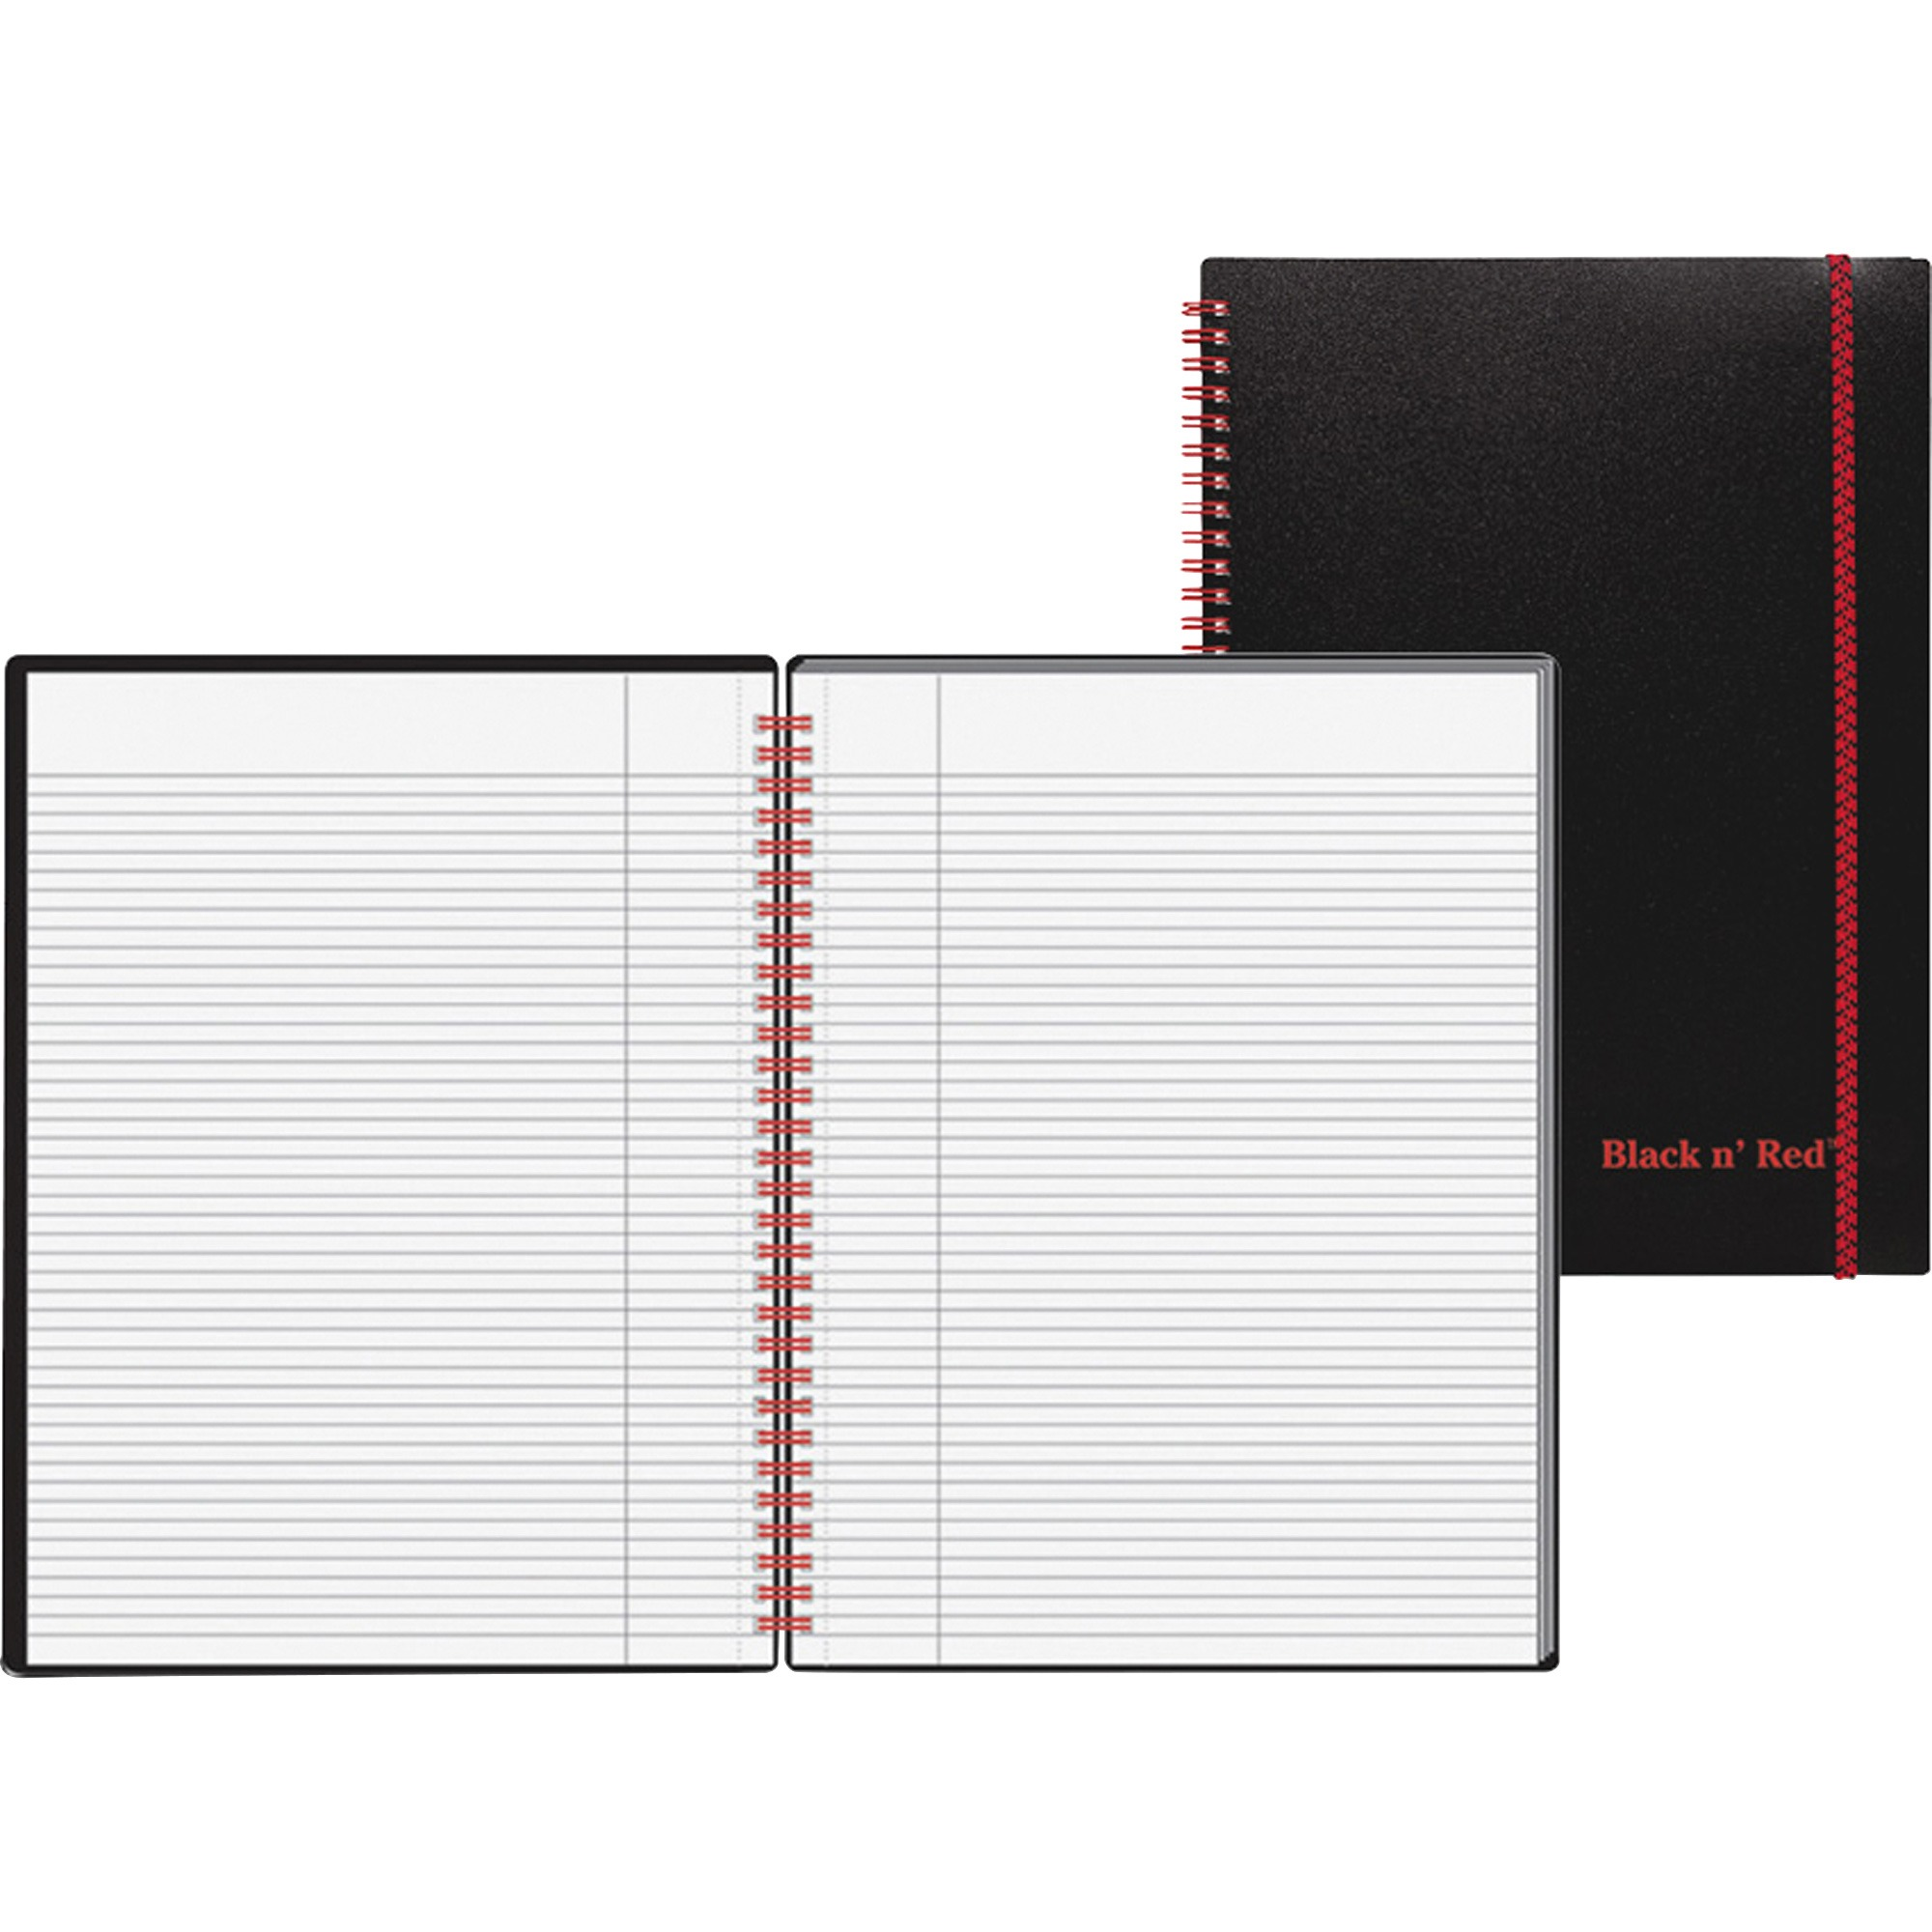 Black n' Red, JDKE67008, Wirebound Poly Notebook with front Pkt, 1 Each